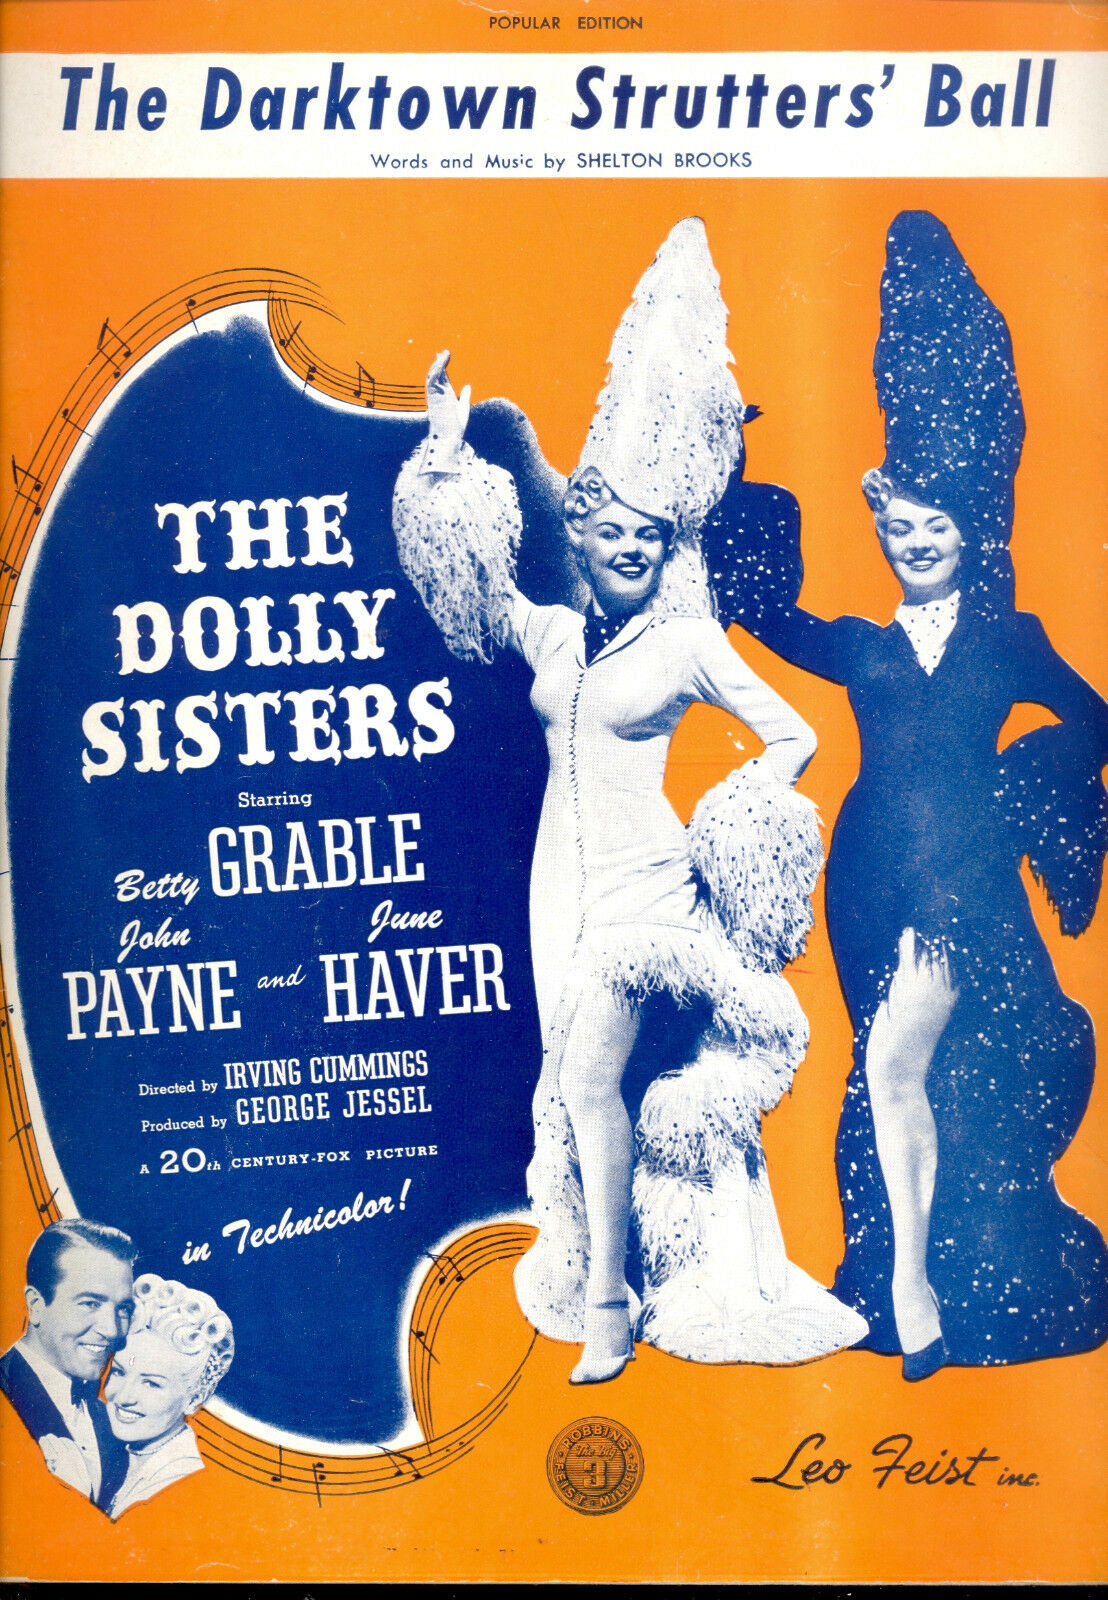 DOLLY SISTERS Sheet Music  Darktown Strutters' Ball  Betty Grable June Haver